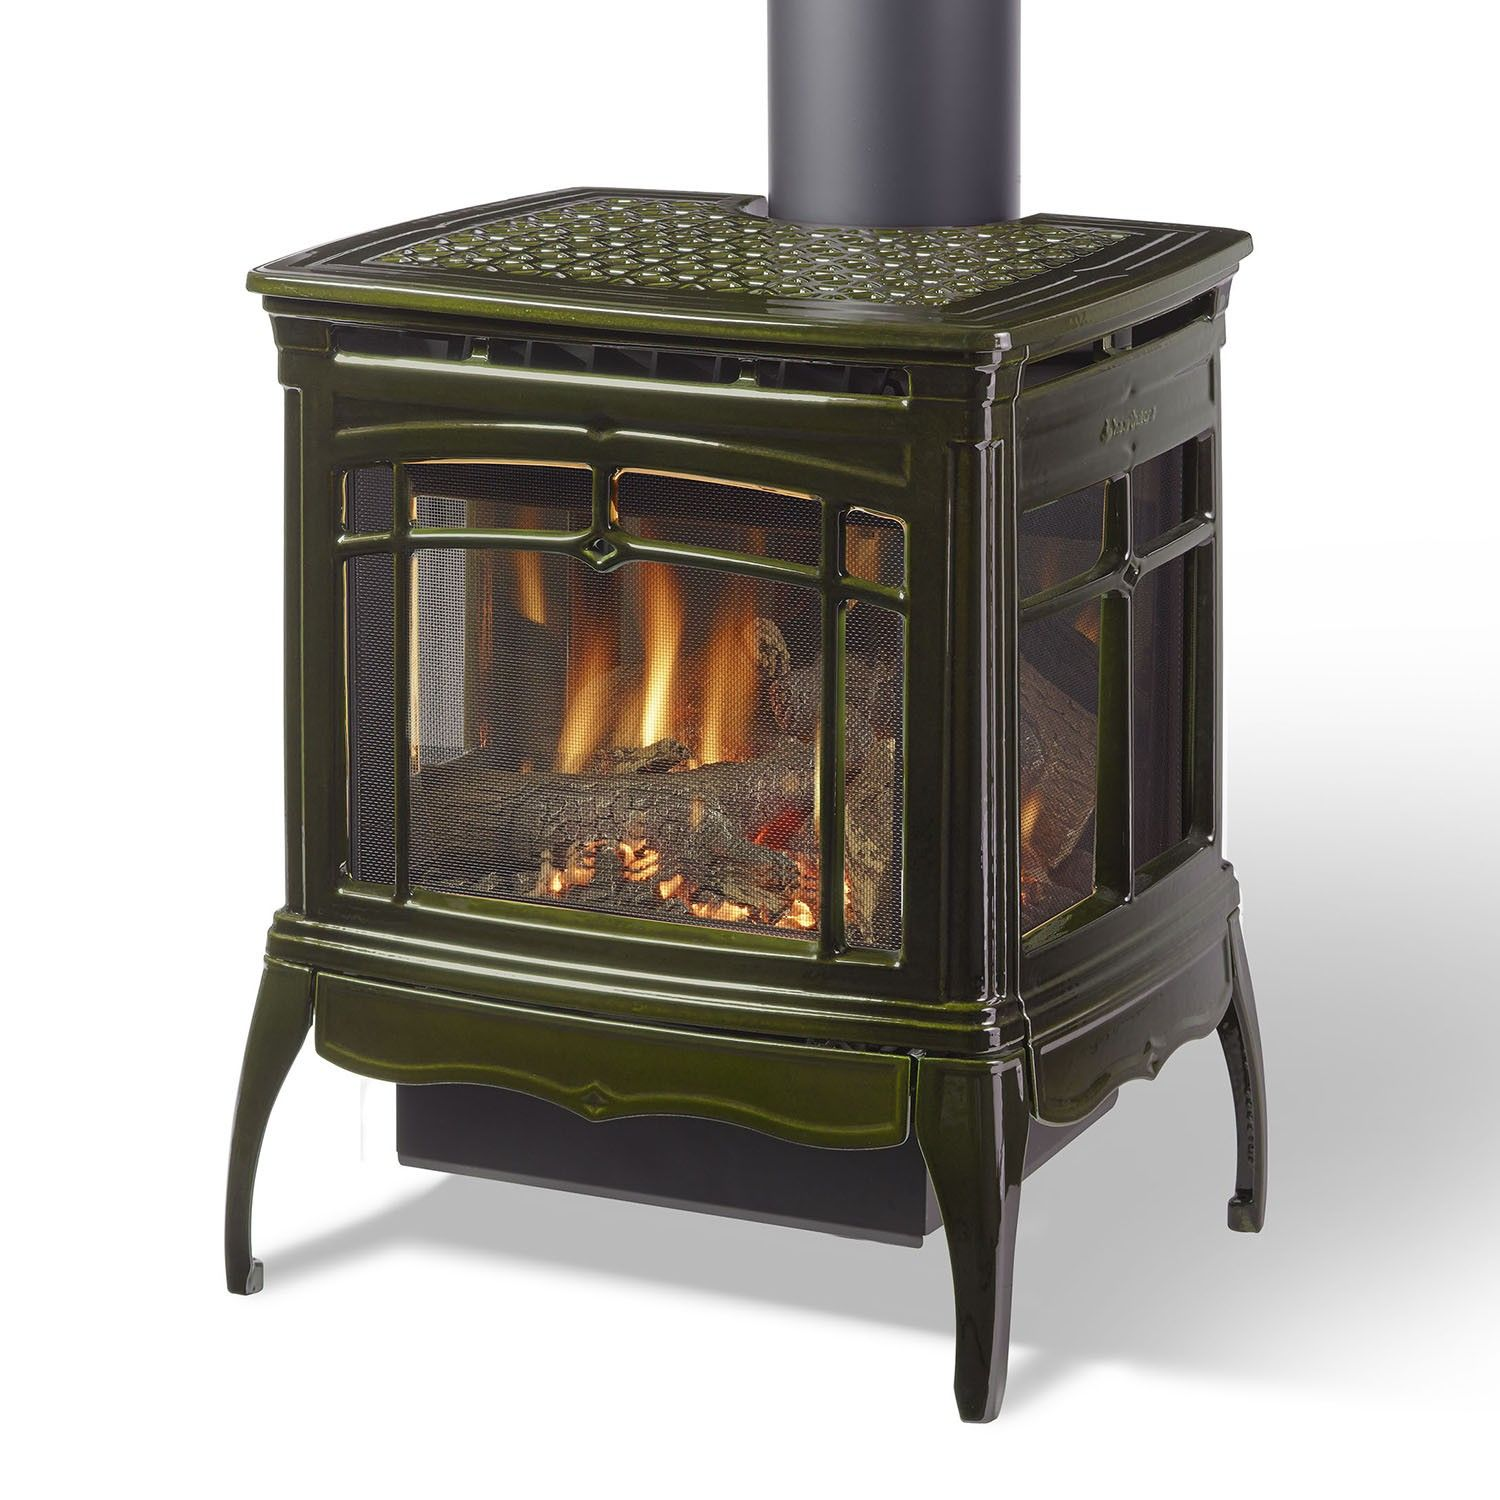 Hearthstone Bristol Freestanding Gas Fireplace High Country Stoves Fireplaces Direct Vent Gas Stove Gas Stove